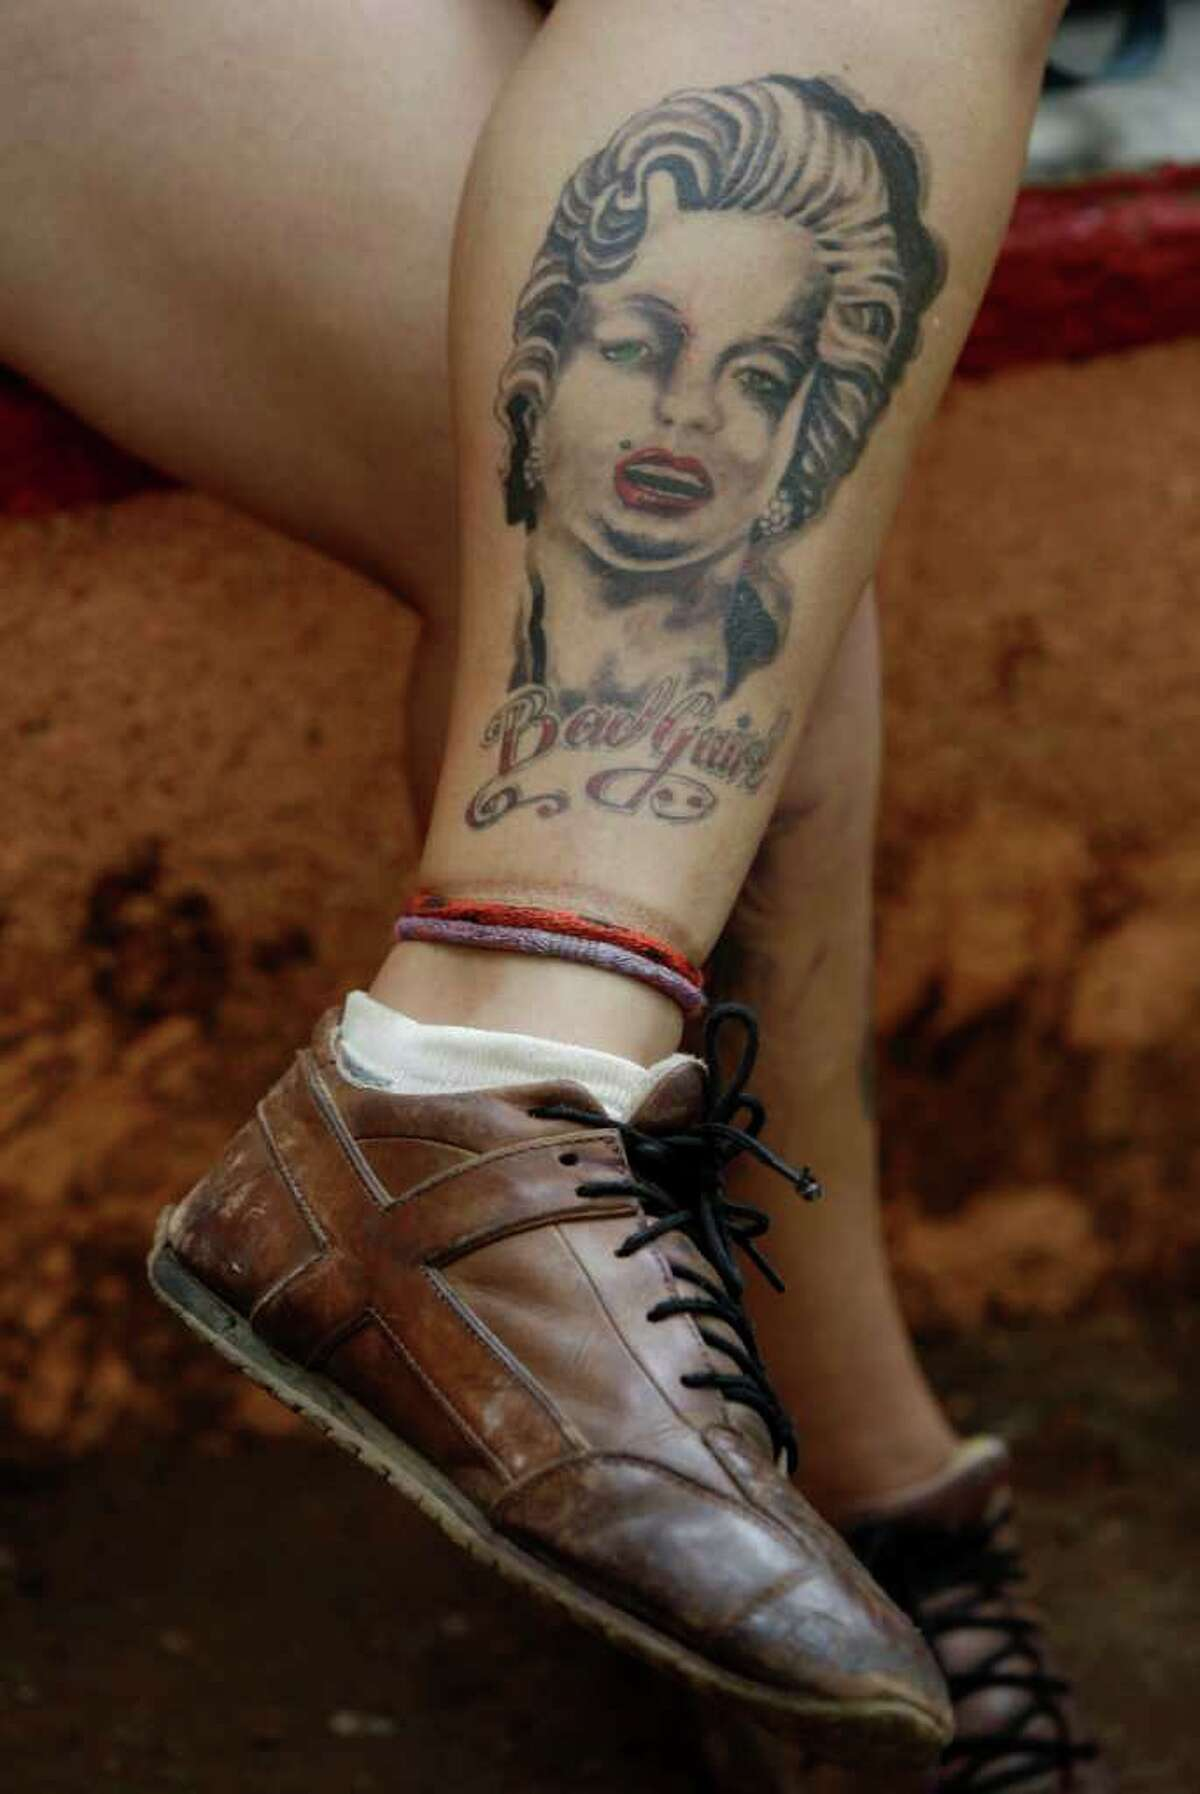 A tattoo depicting Marilyn Monroe is seen on a leg of a woman at the Atenas Rock Festival in Matanzas, Cuba, Saturday, June 18, 2011. From June 17 to June 19 Matanzas hosts the 10th National Atenas Rock Festival that gathers rock bands from across the country, during which a tattoo convention and music conferences are held. (AP Photo/Javier Galeano)